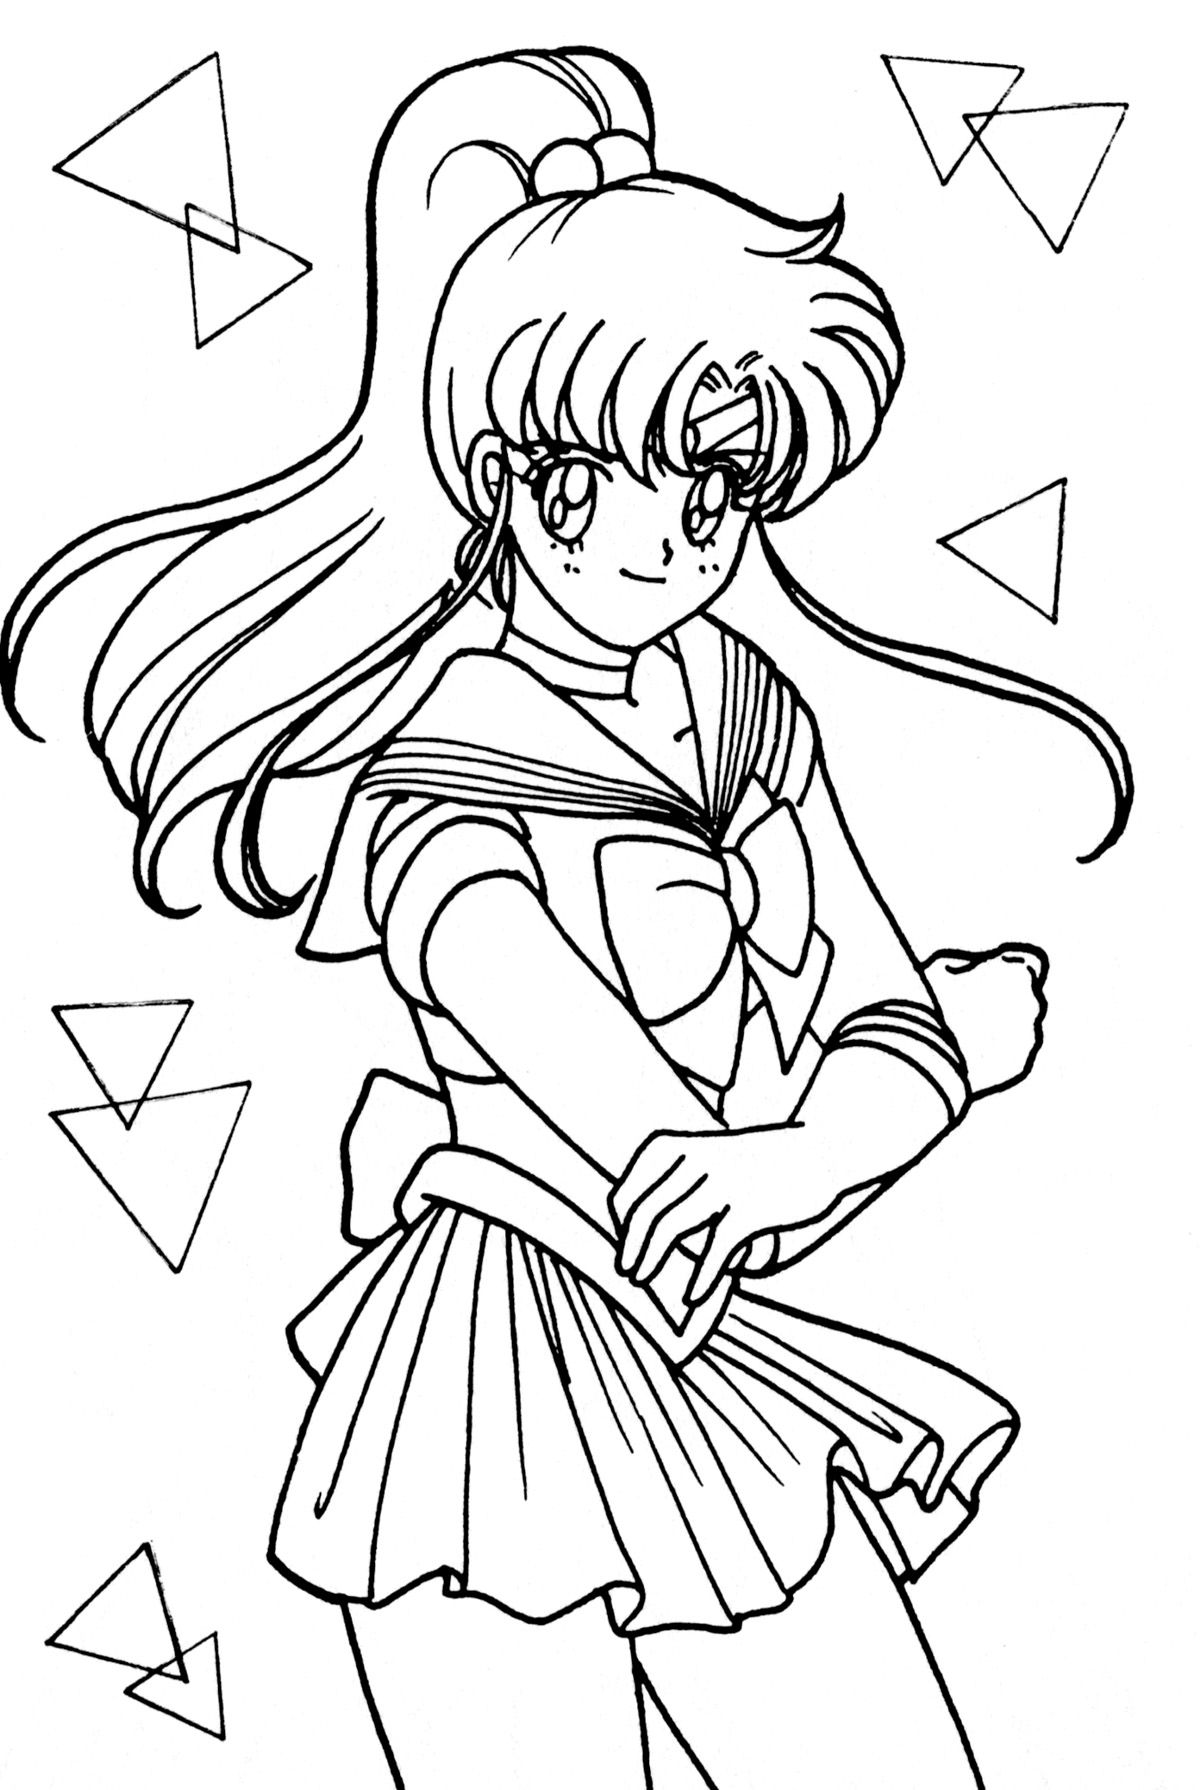 Pin de spetri en LineArt: Sailor Moon | Pinterest | Dibu, Sailor ...